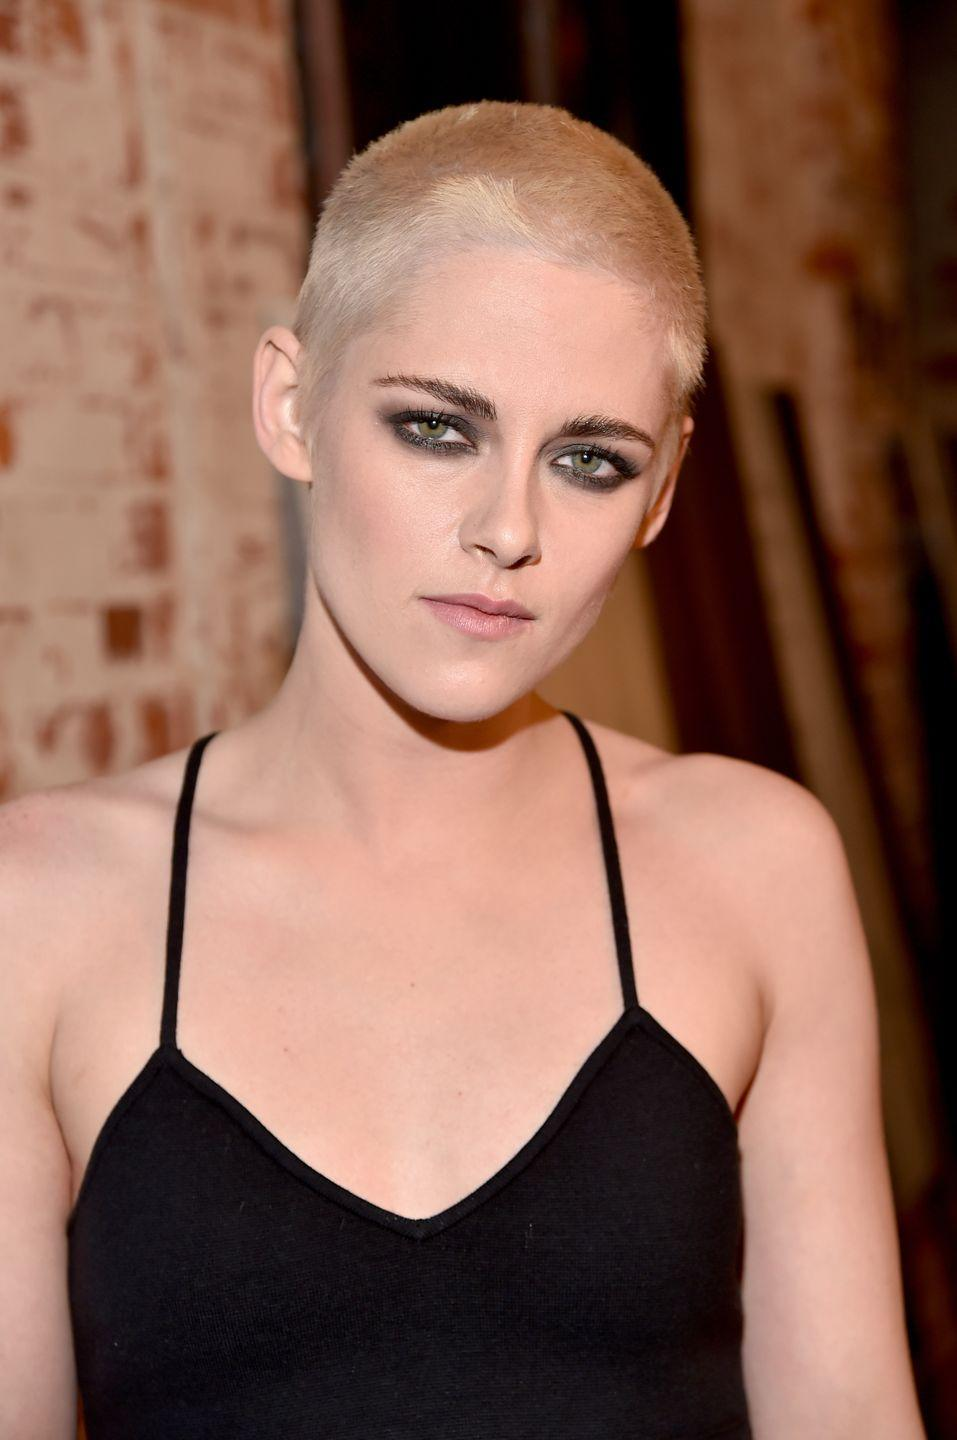 """<p>Kristen Stewart's decision to shave her head for her role in <em>Underwater</em> was entirely based on practicality. The actress explained that she volunteered for the chop because her character's costume involved a lot of helmets, making a buzz cut easier to deal with during filming. """"I mean, I'm not going to be able to have touch-ups once I put the helmet on, so I must shave my head,"""" she told <em><a href=""""https://www.youtube.com/watch?v=wwtIa1DLBhQ"""" rel=""""nofollow noopener"""" target=""""_blank"""" data-ylk=""""slk:The Today Show"""" class=""""link rapid-noclick-resp"""">The Today Show</a></em>. </p>"""